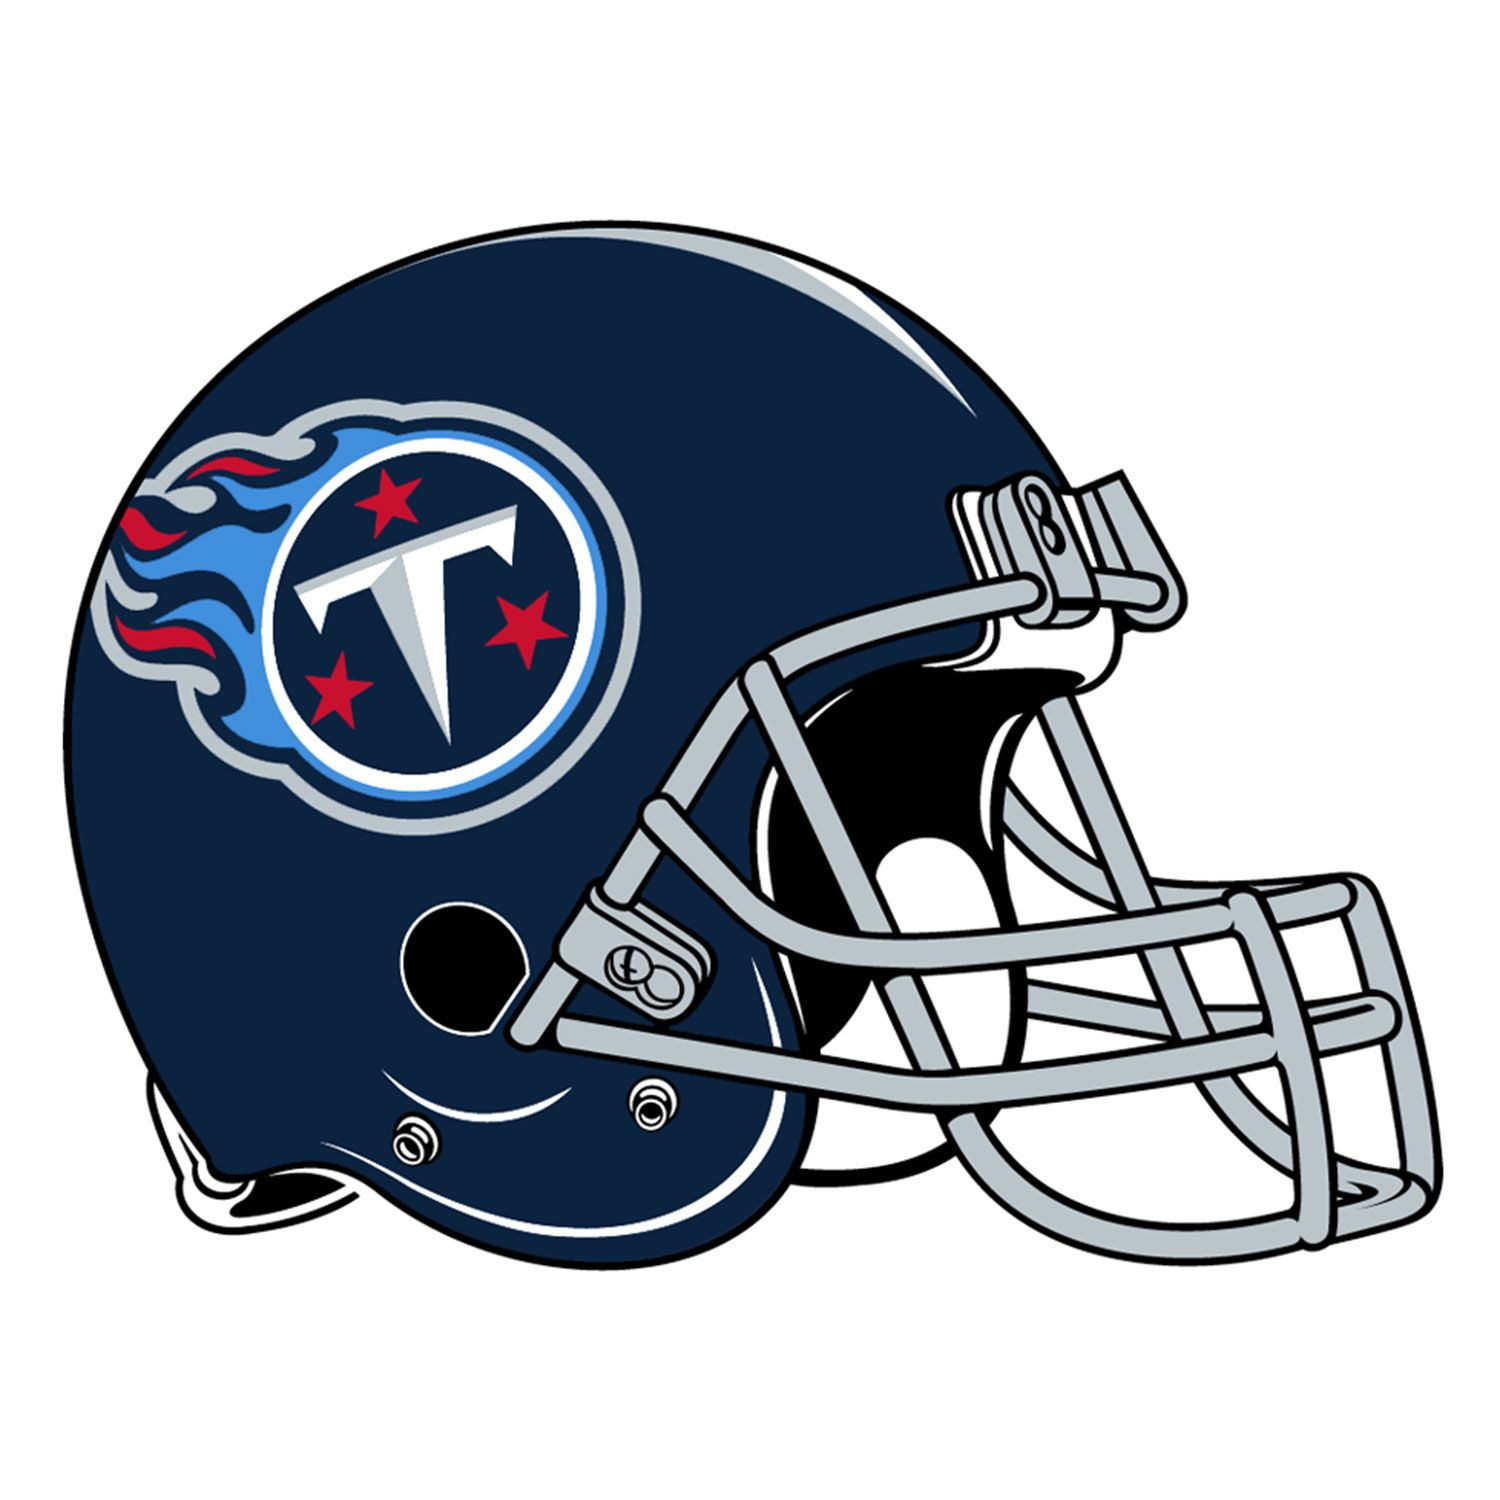 TITANS GAMES - FREE LIVE ONLINE STREAMING